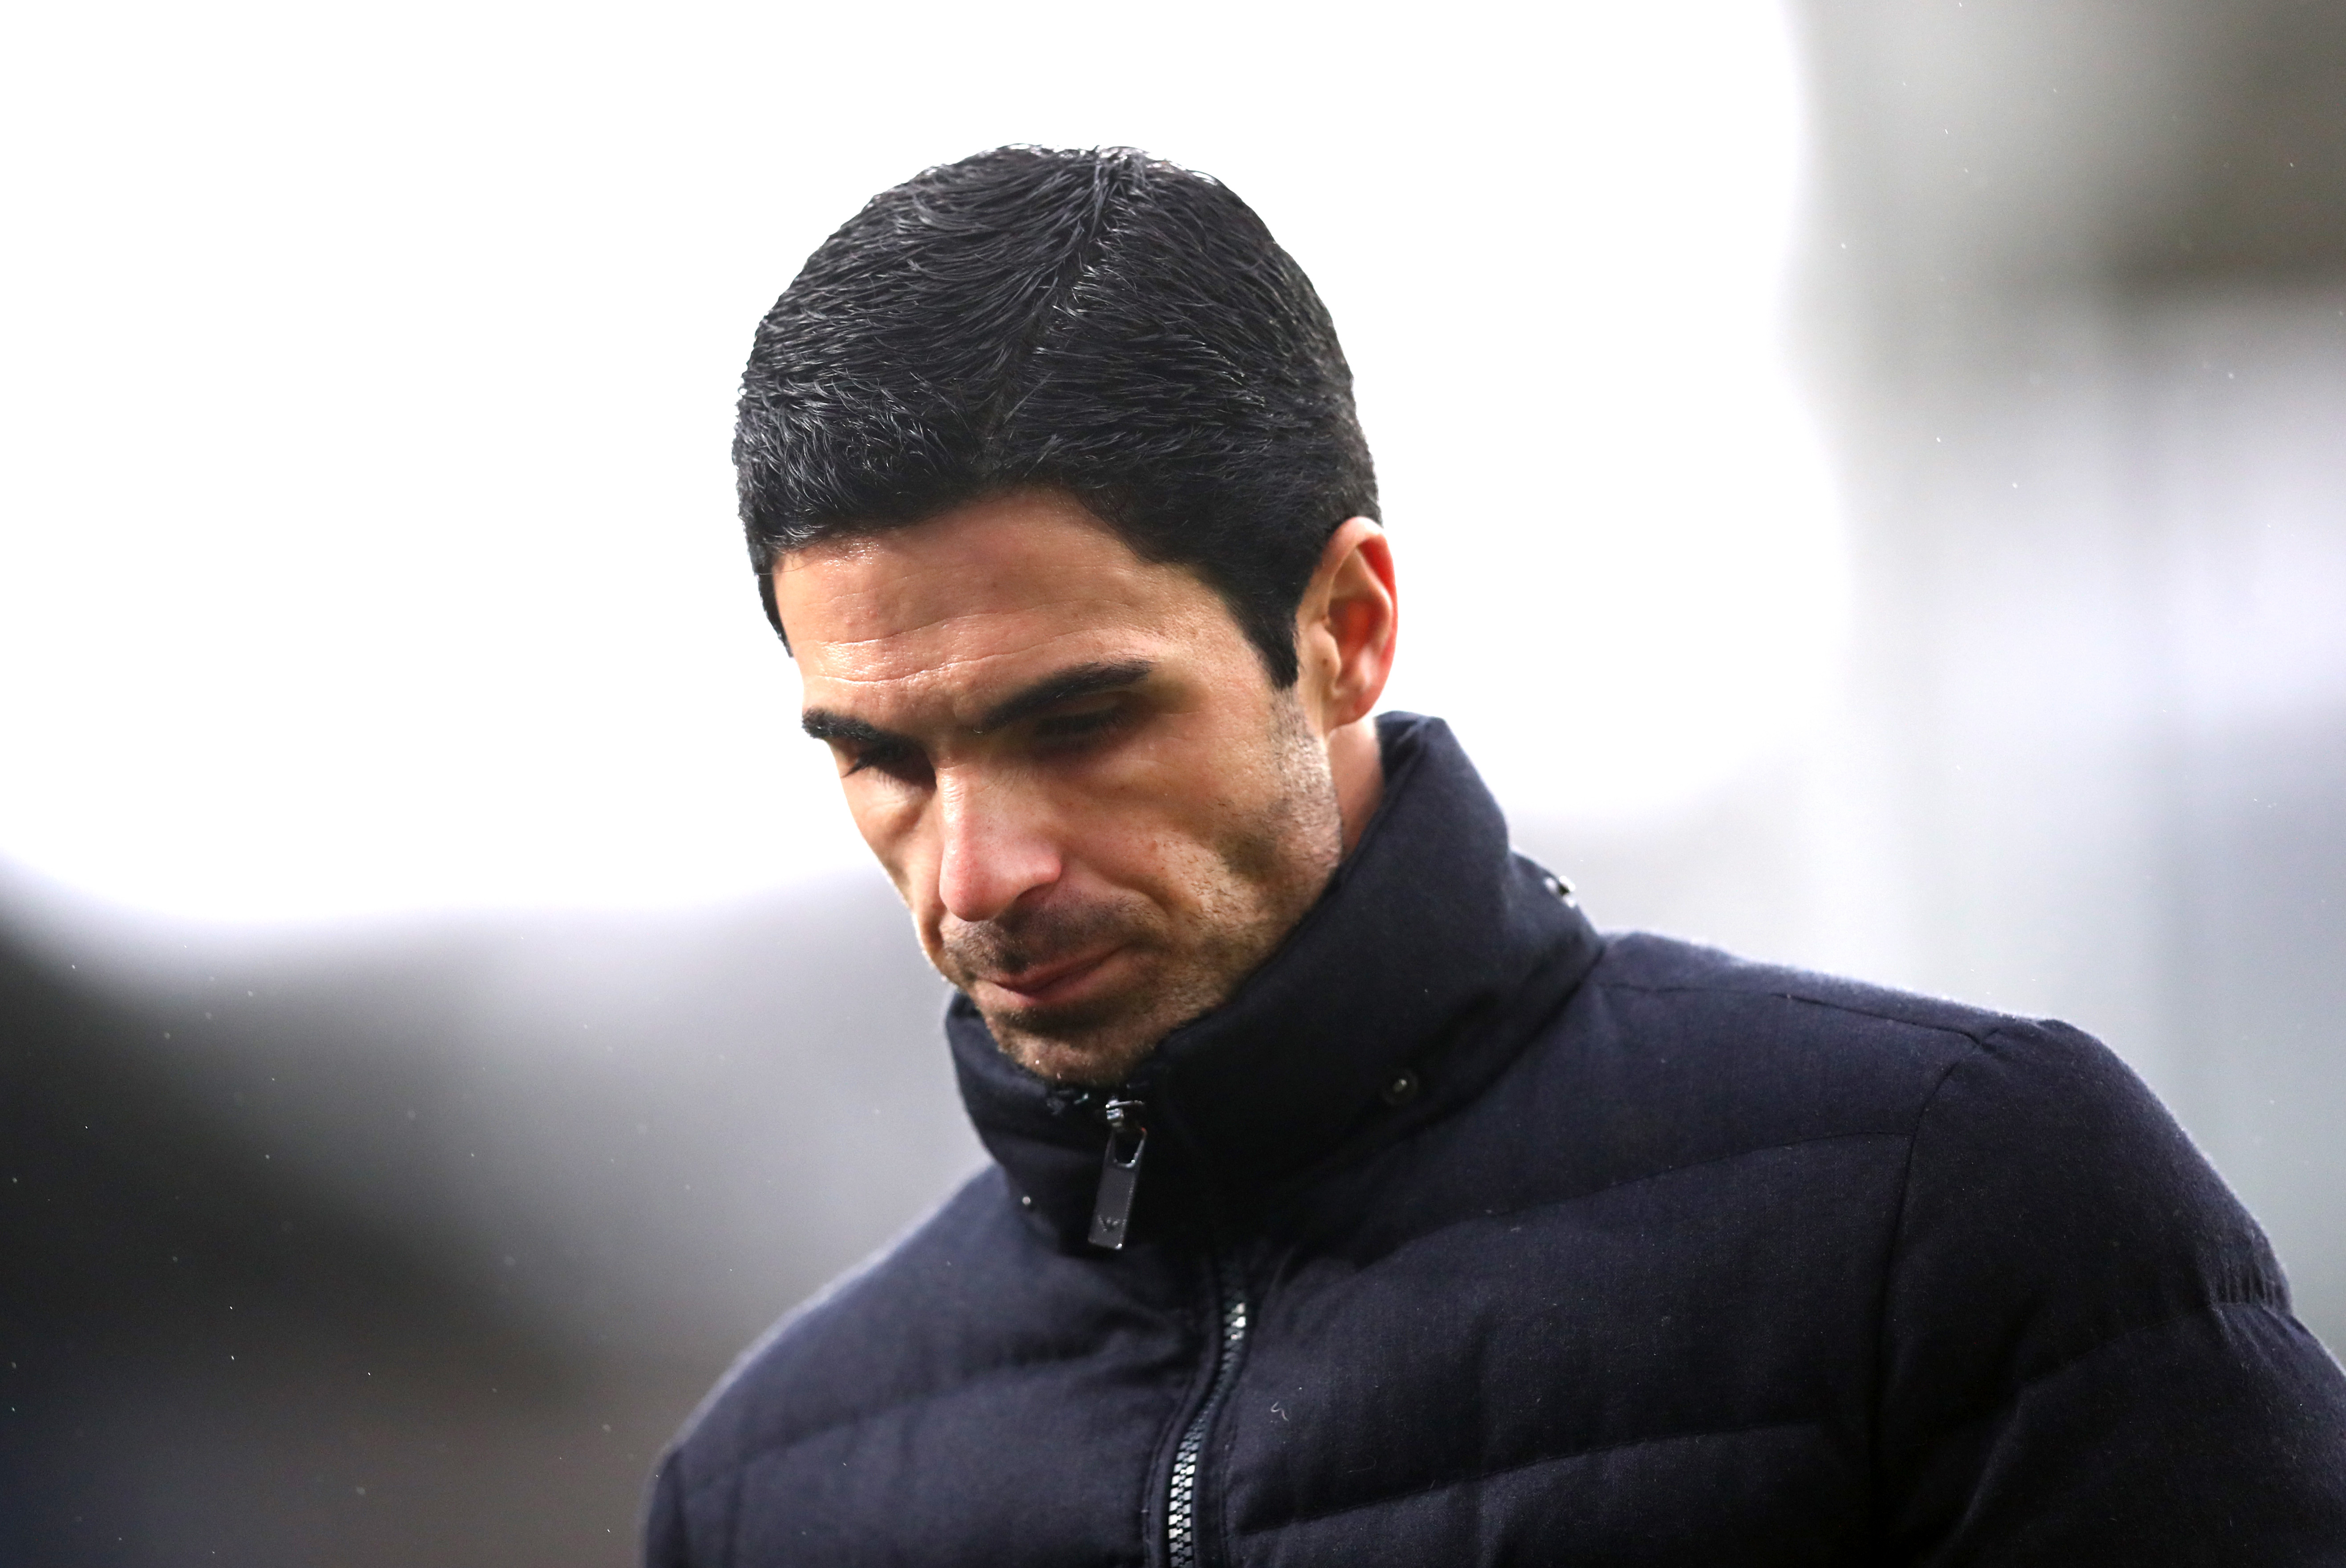 Arteta's arrival has brought in a buoyant mood at Arsenal (Photo by Dan Istitene/Getty Images)